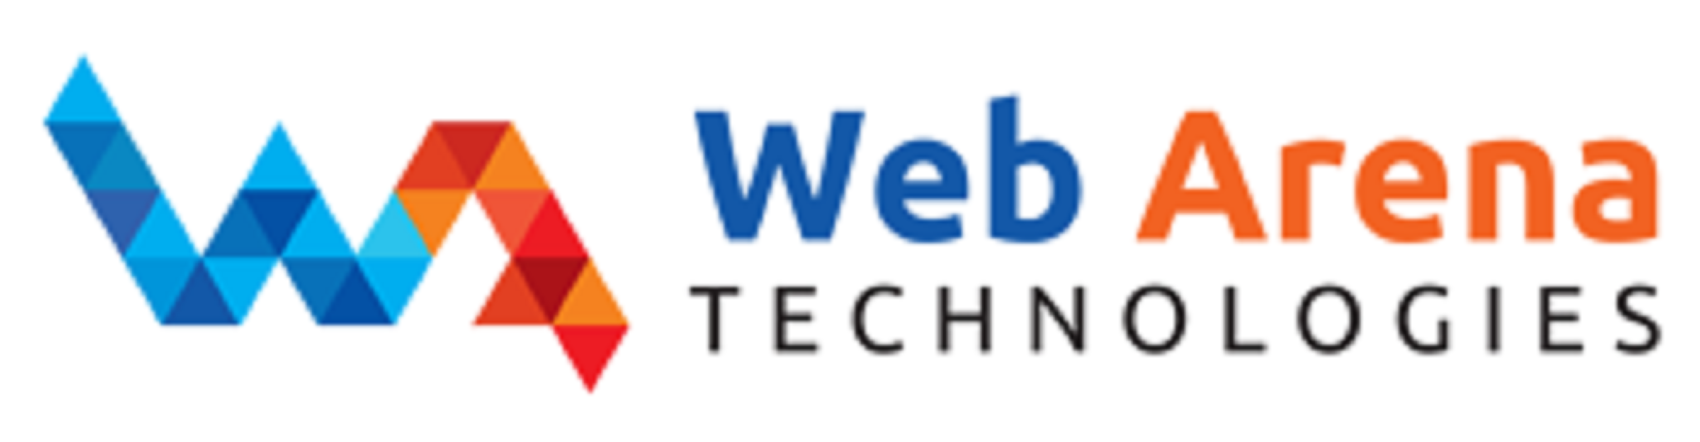 Web arena technology logo